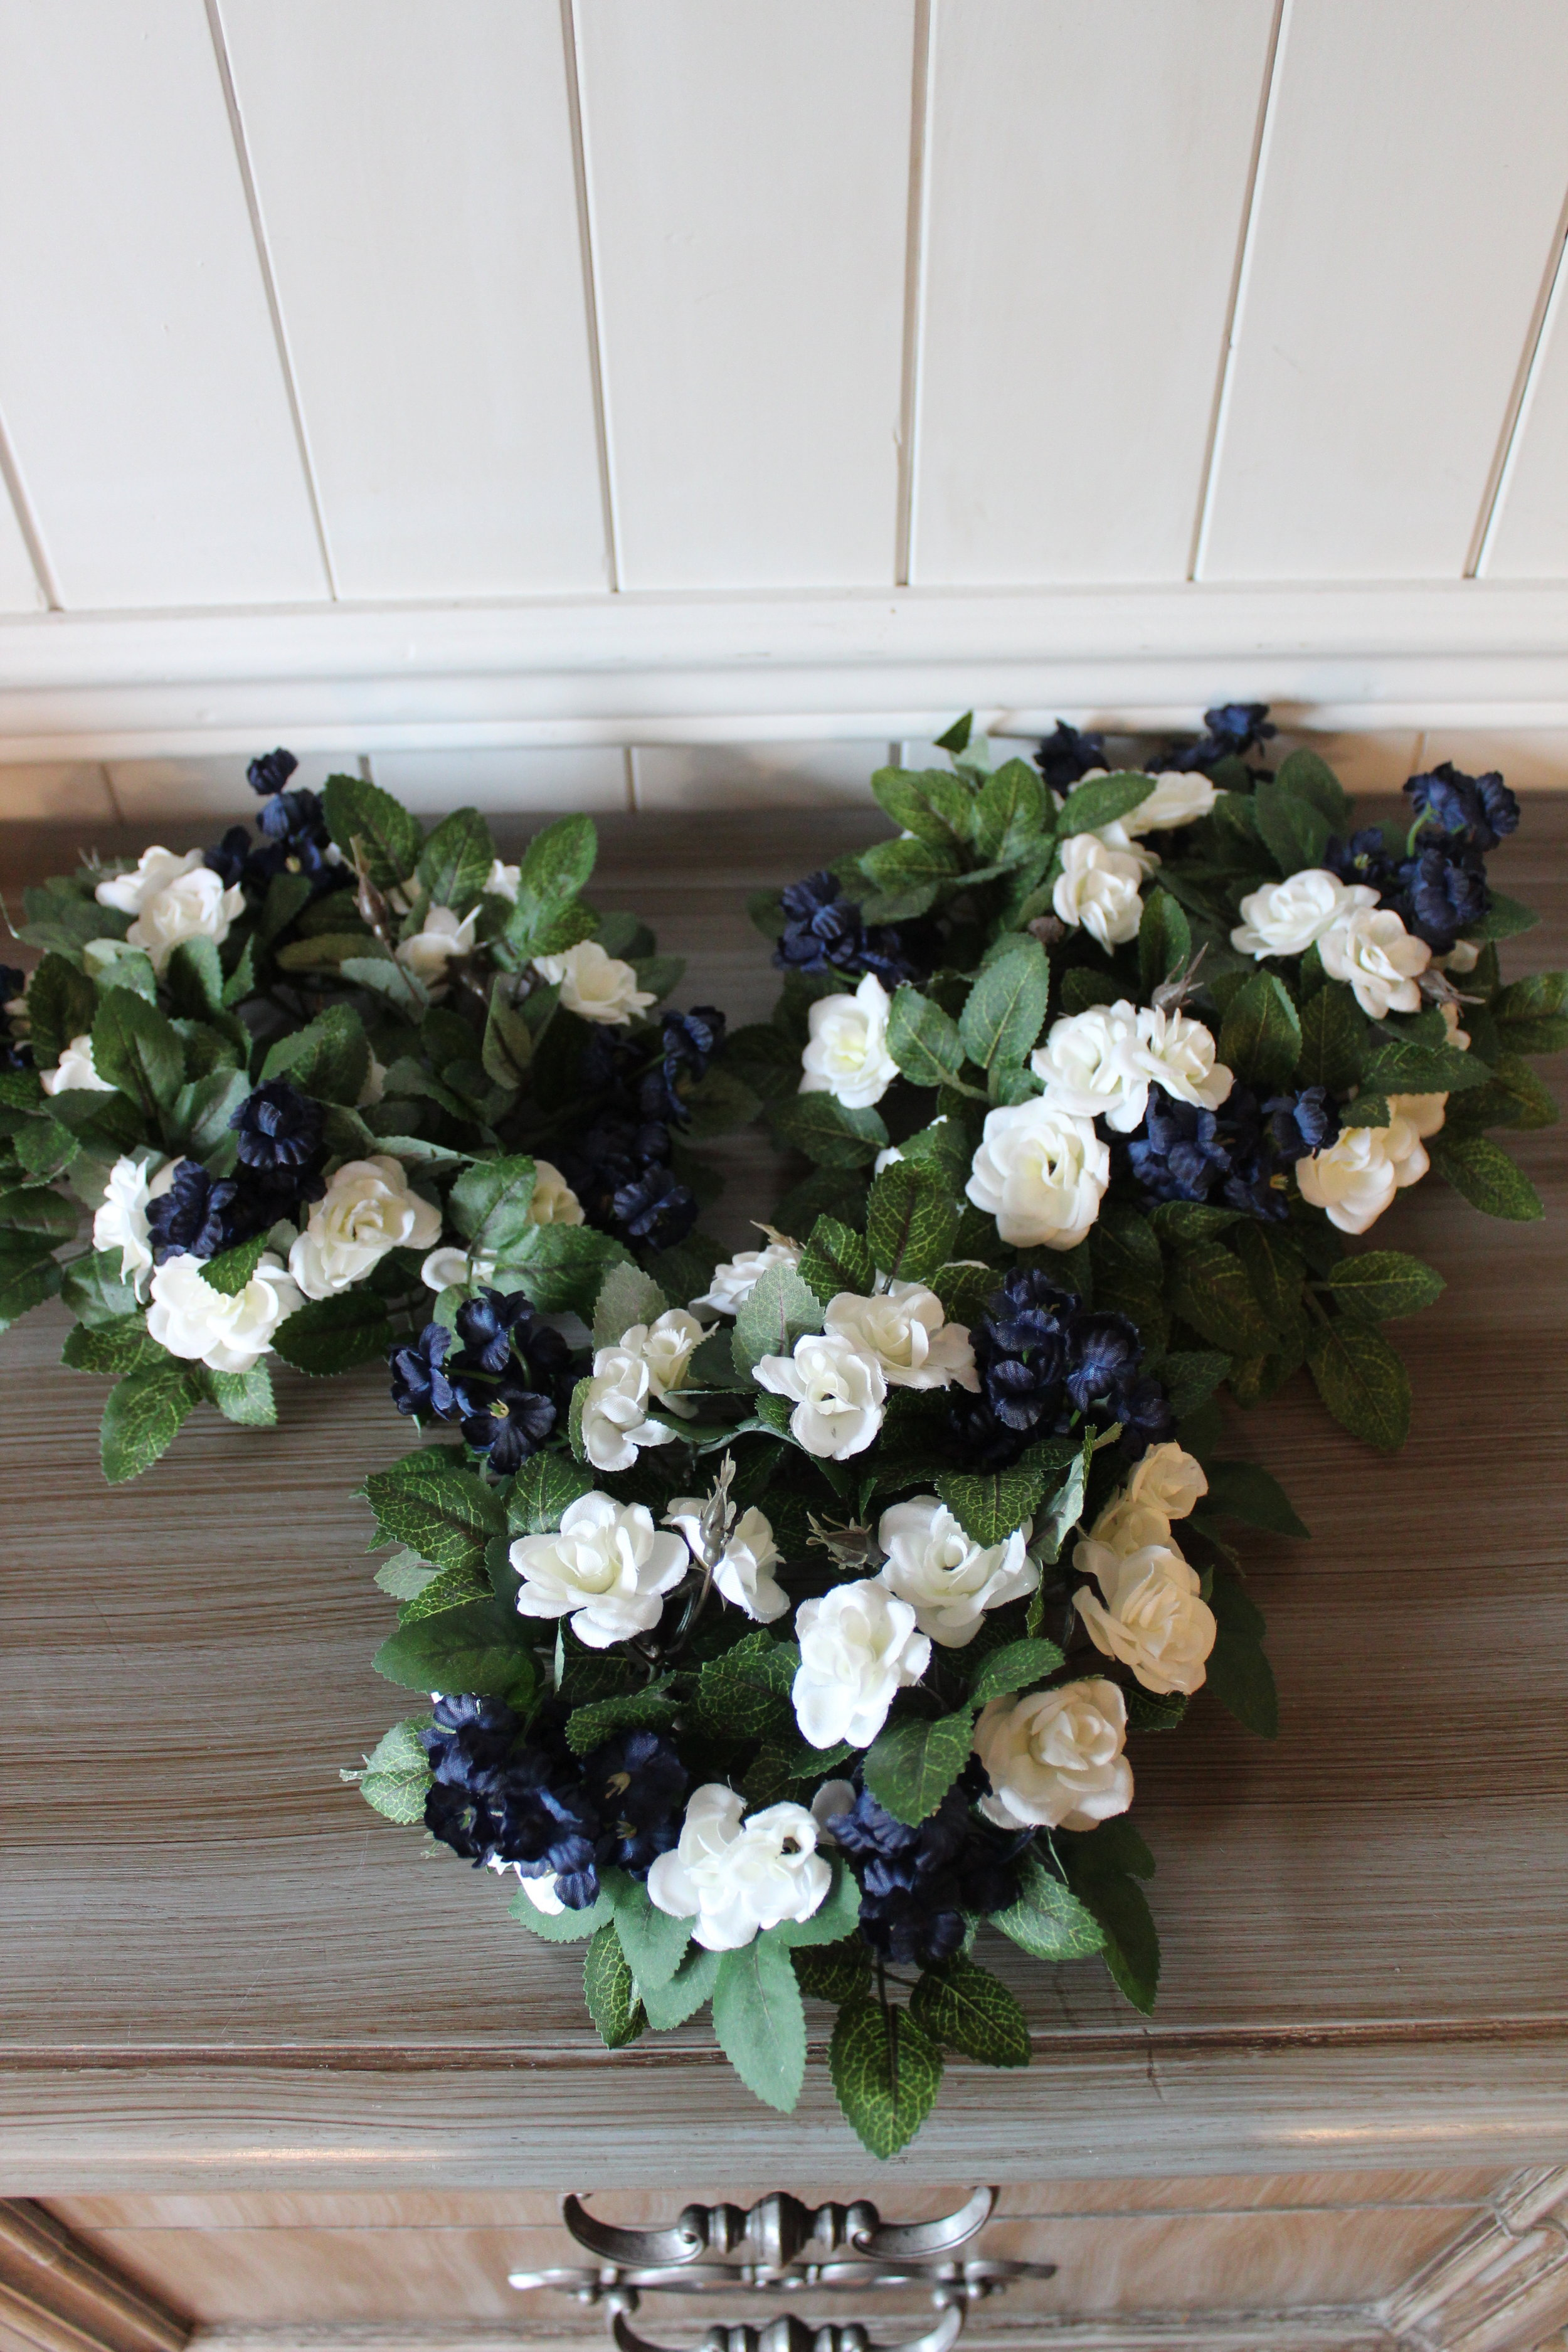 Candle rings for the Unity Candle: ivy, blue accent flowers, mini ivory roses.